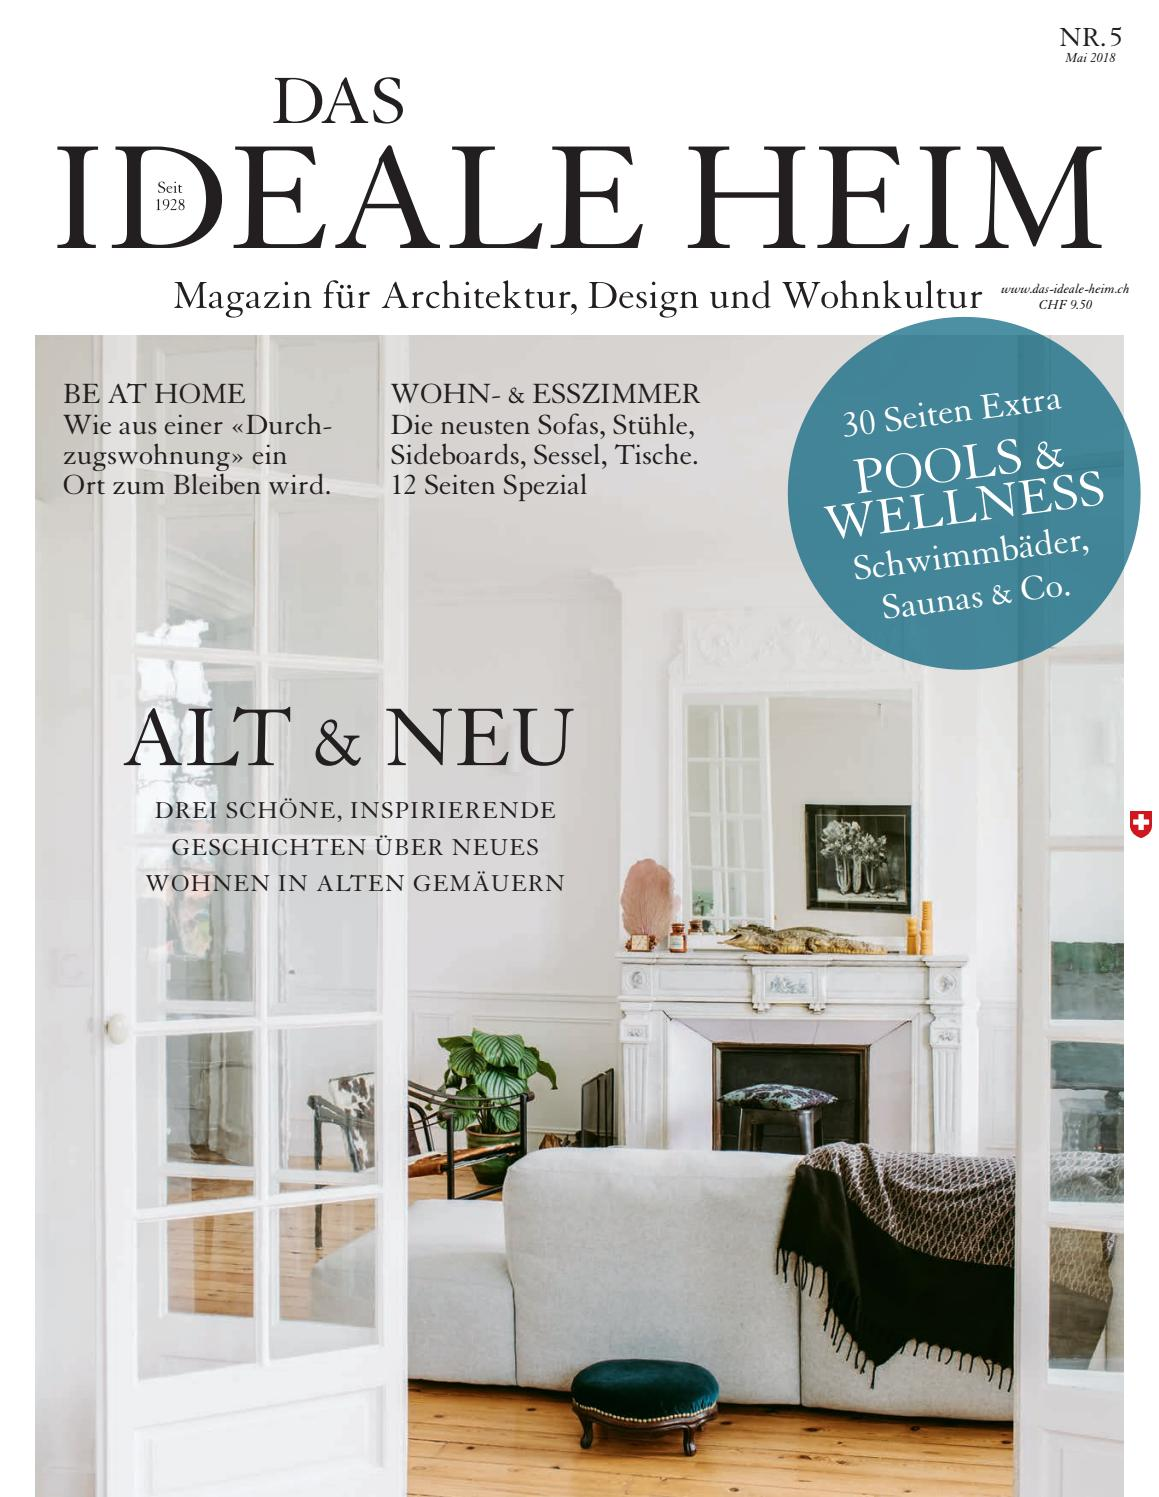 Bettsofa Interio Ch Das Ideale Heim 05 2018 By Archithema Verlag Issuu